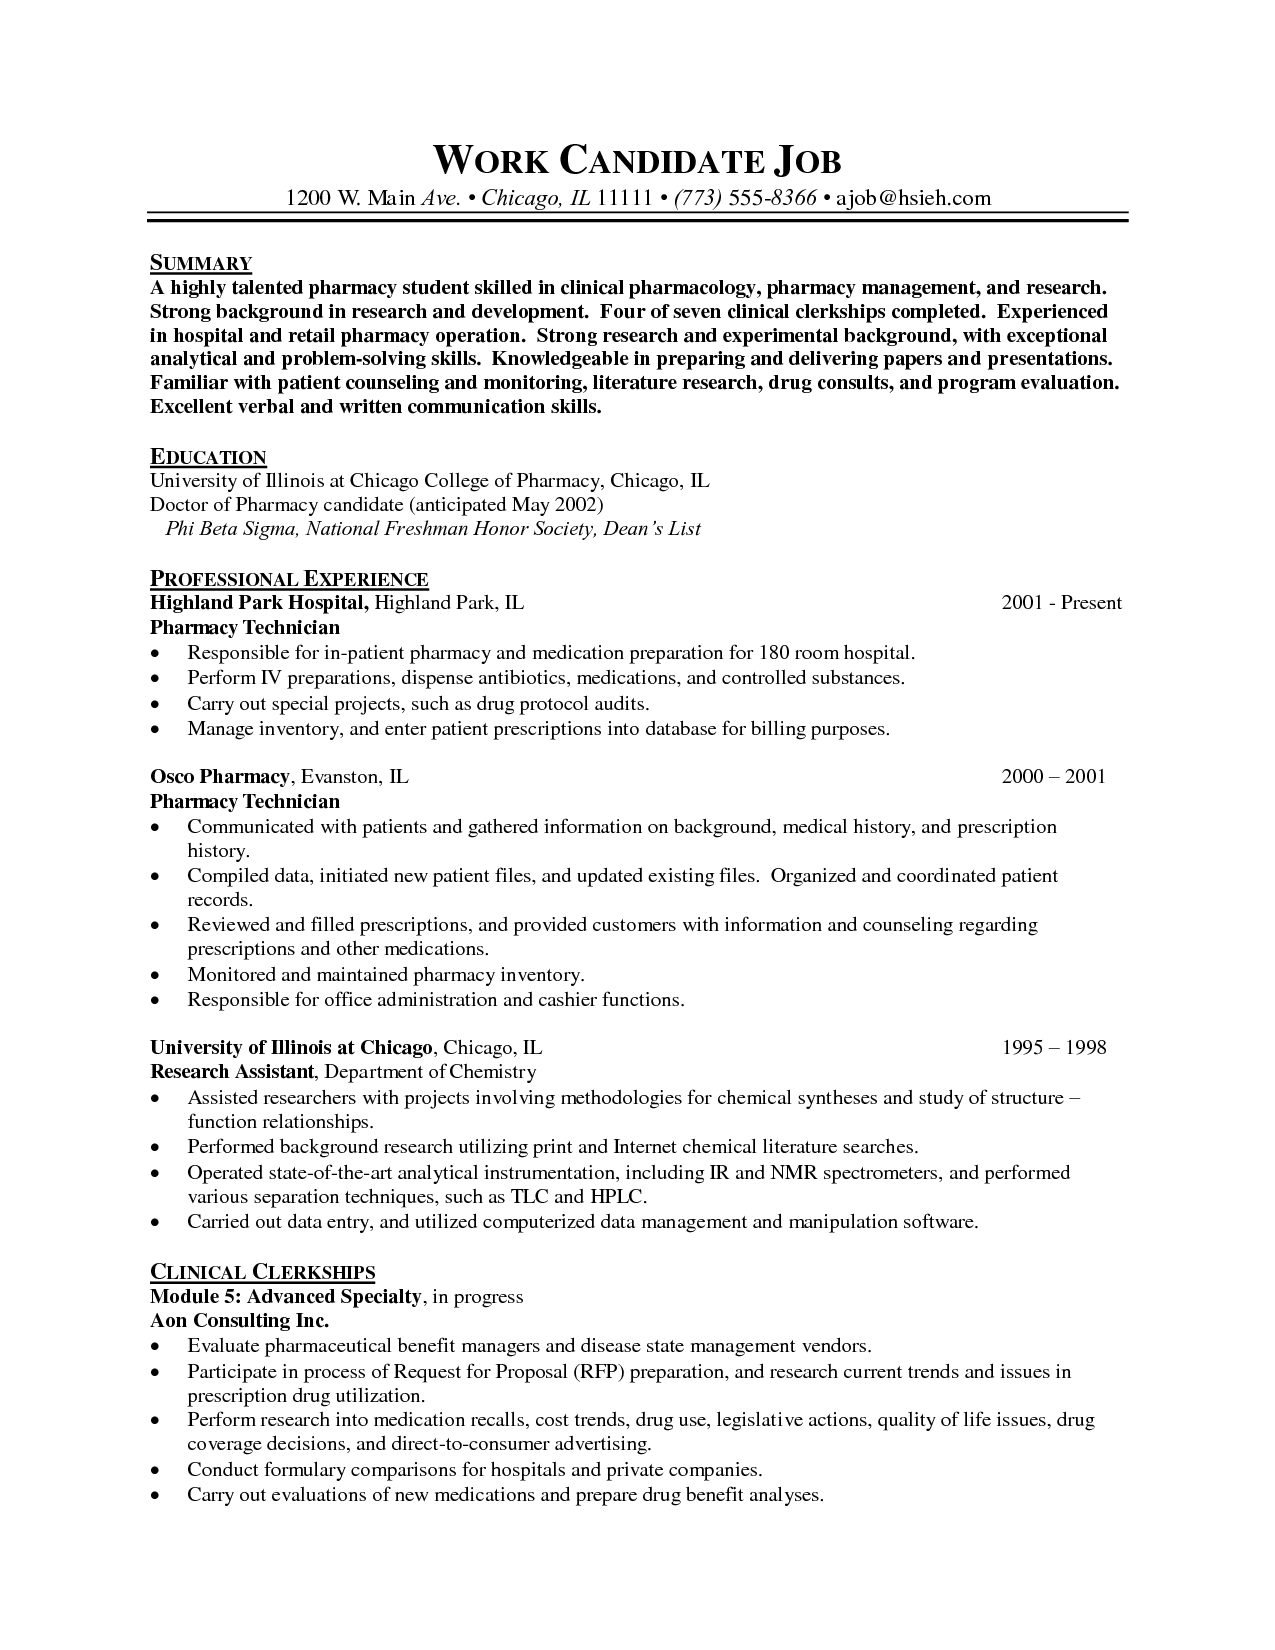 pharmacy tech resume objective resume objective for pharmacy